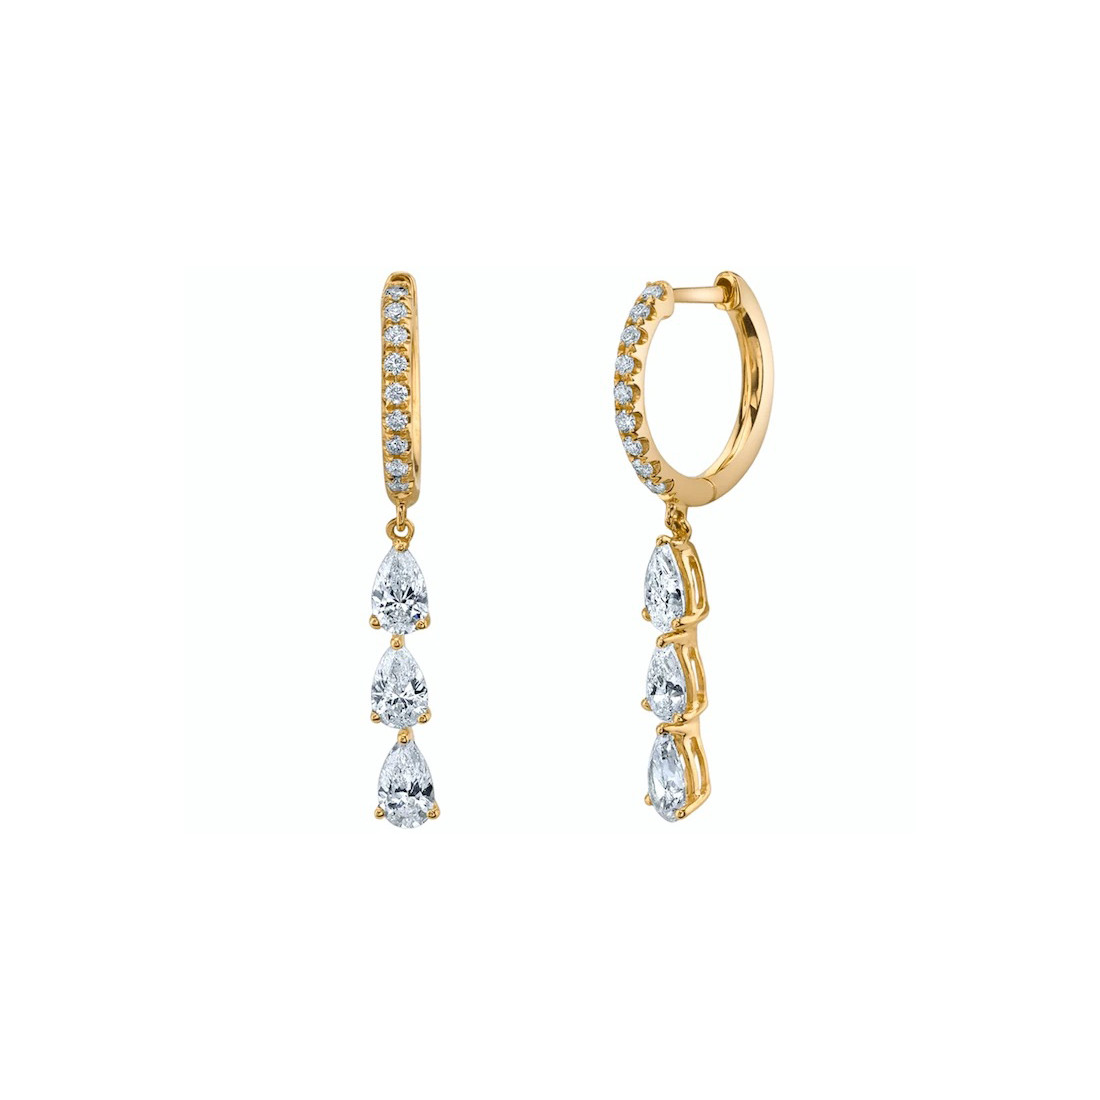 18k Yellow Gold & Diamond Huggies with Diamond Drops